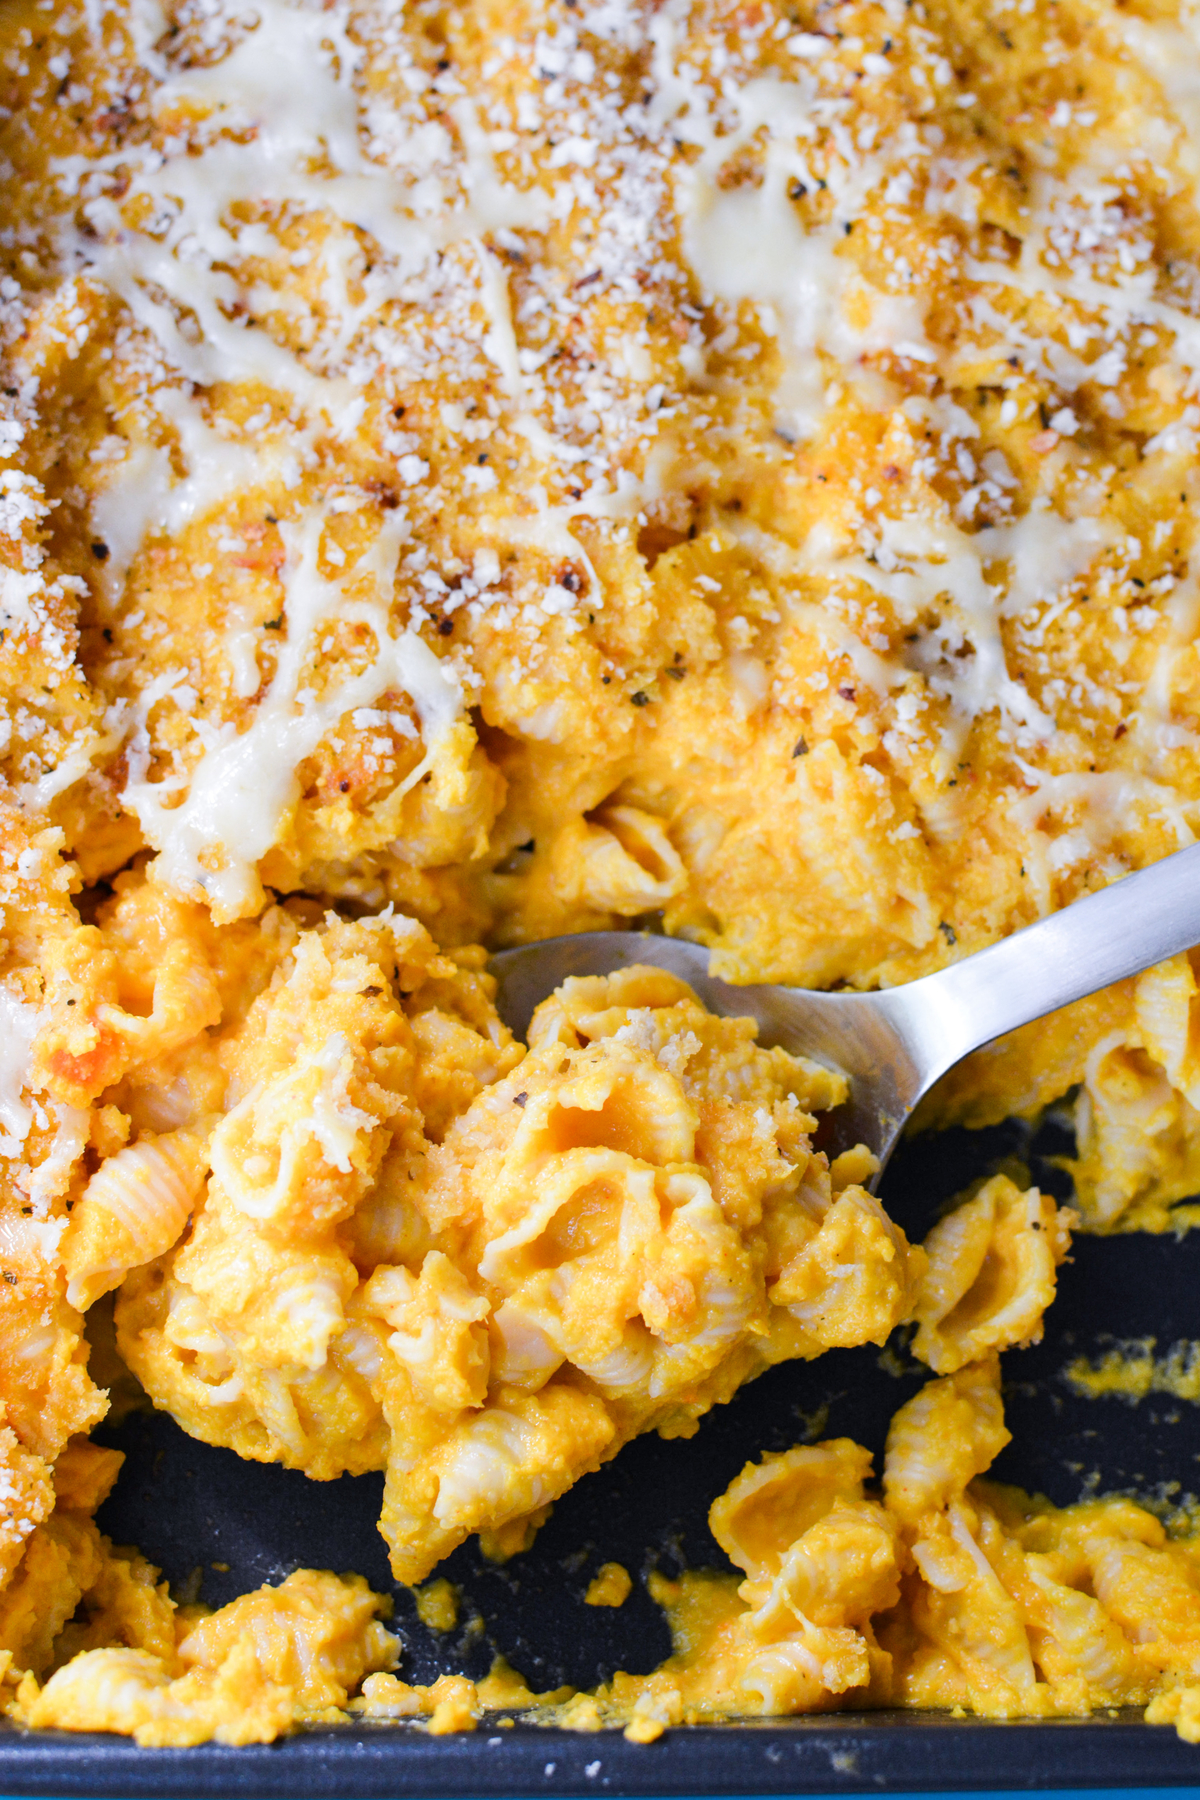 Macaroni with Orange Cauliflower Sauce advise